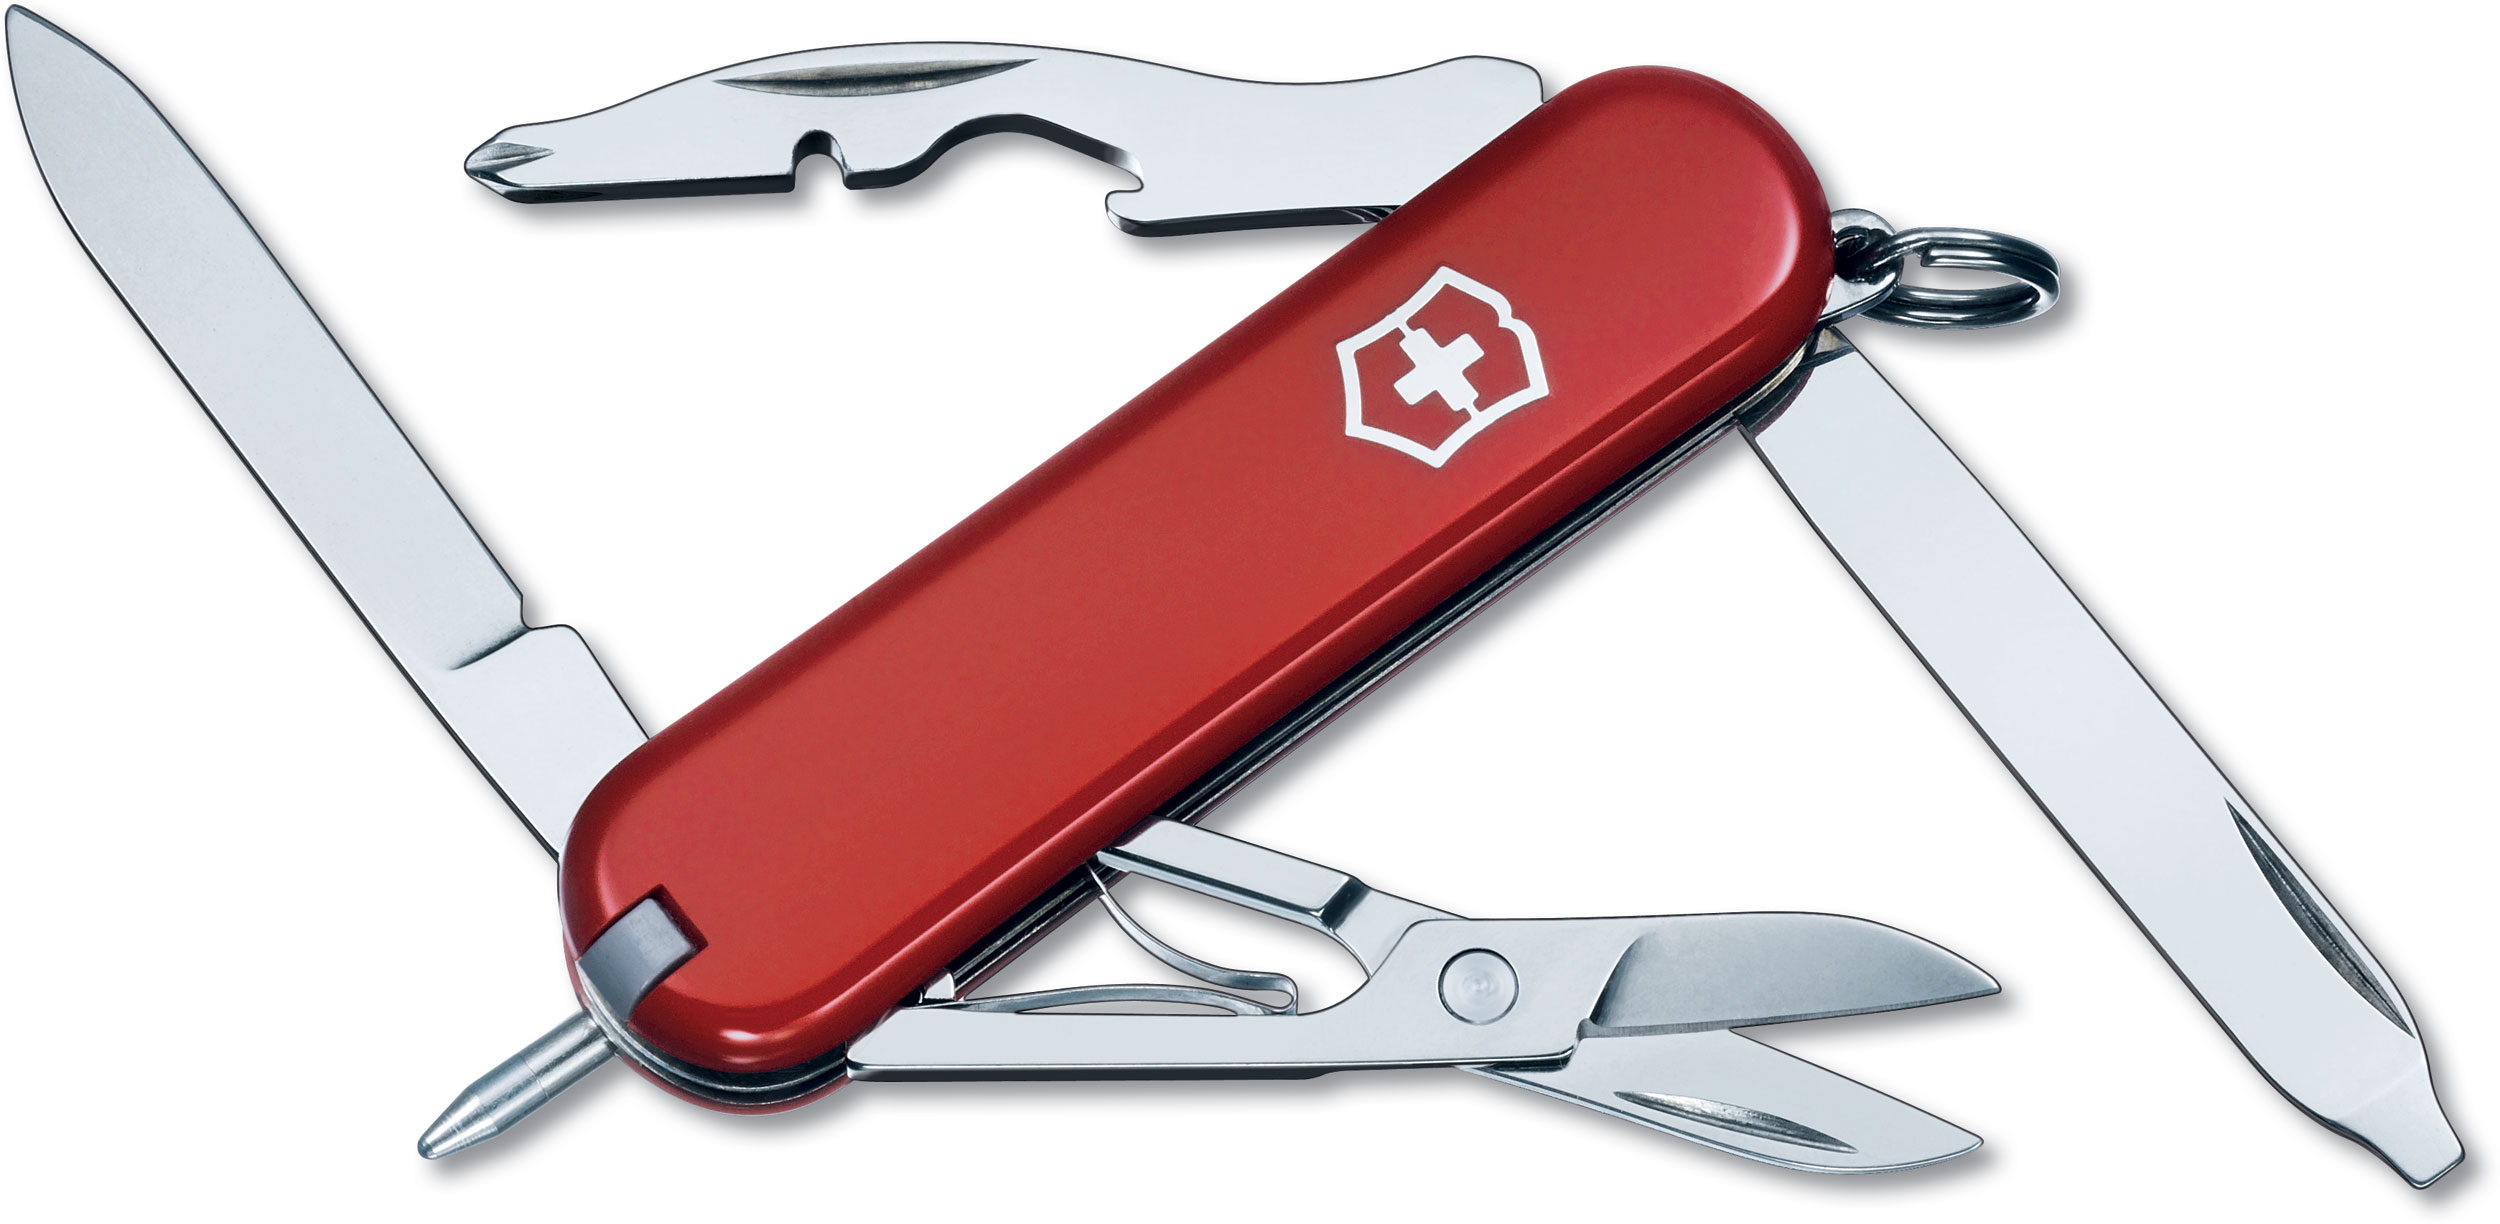 Victorinox Swiss Army Manager Multi-Tool, Red, 2.28 inch Closed